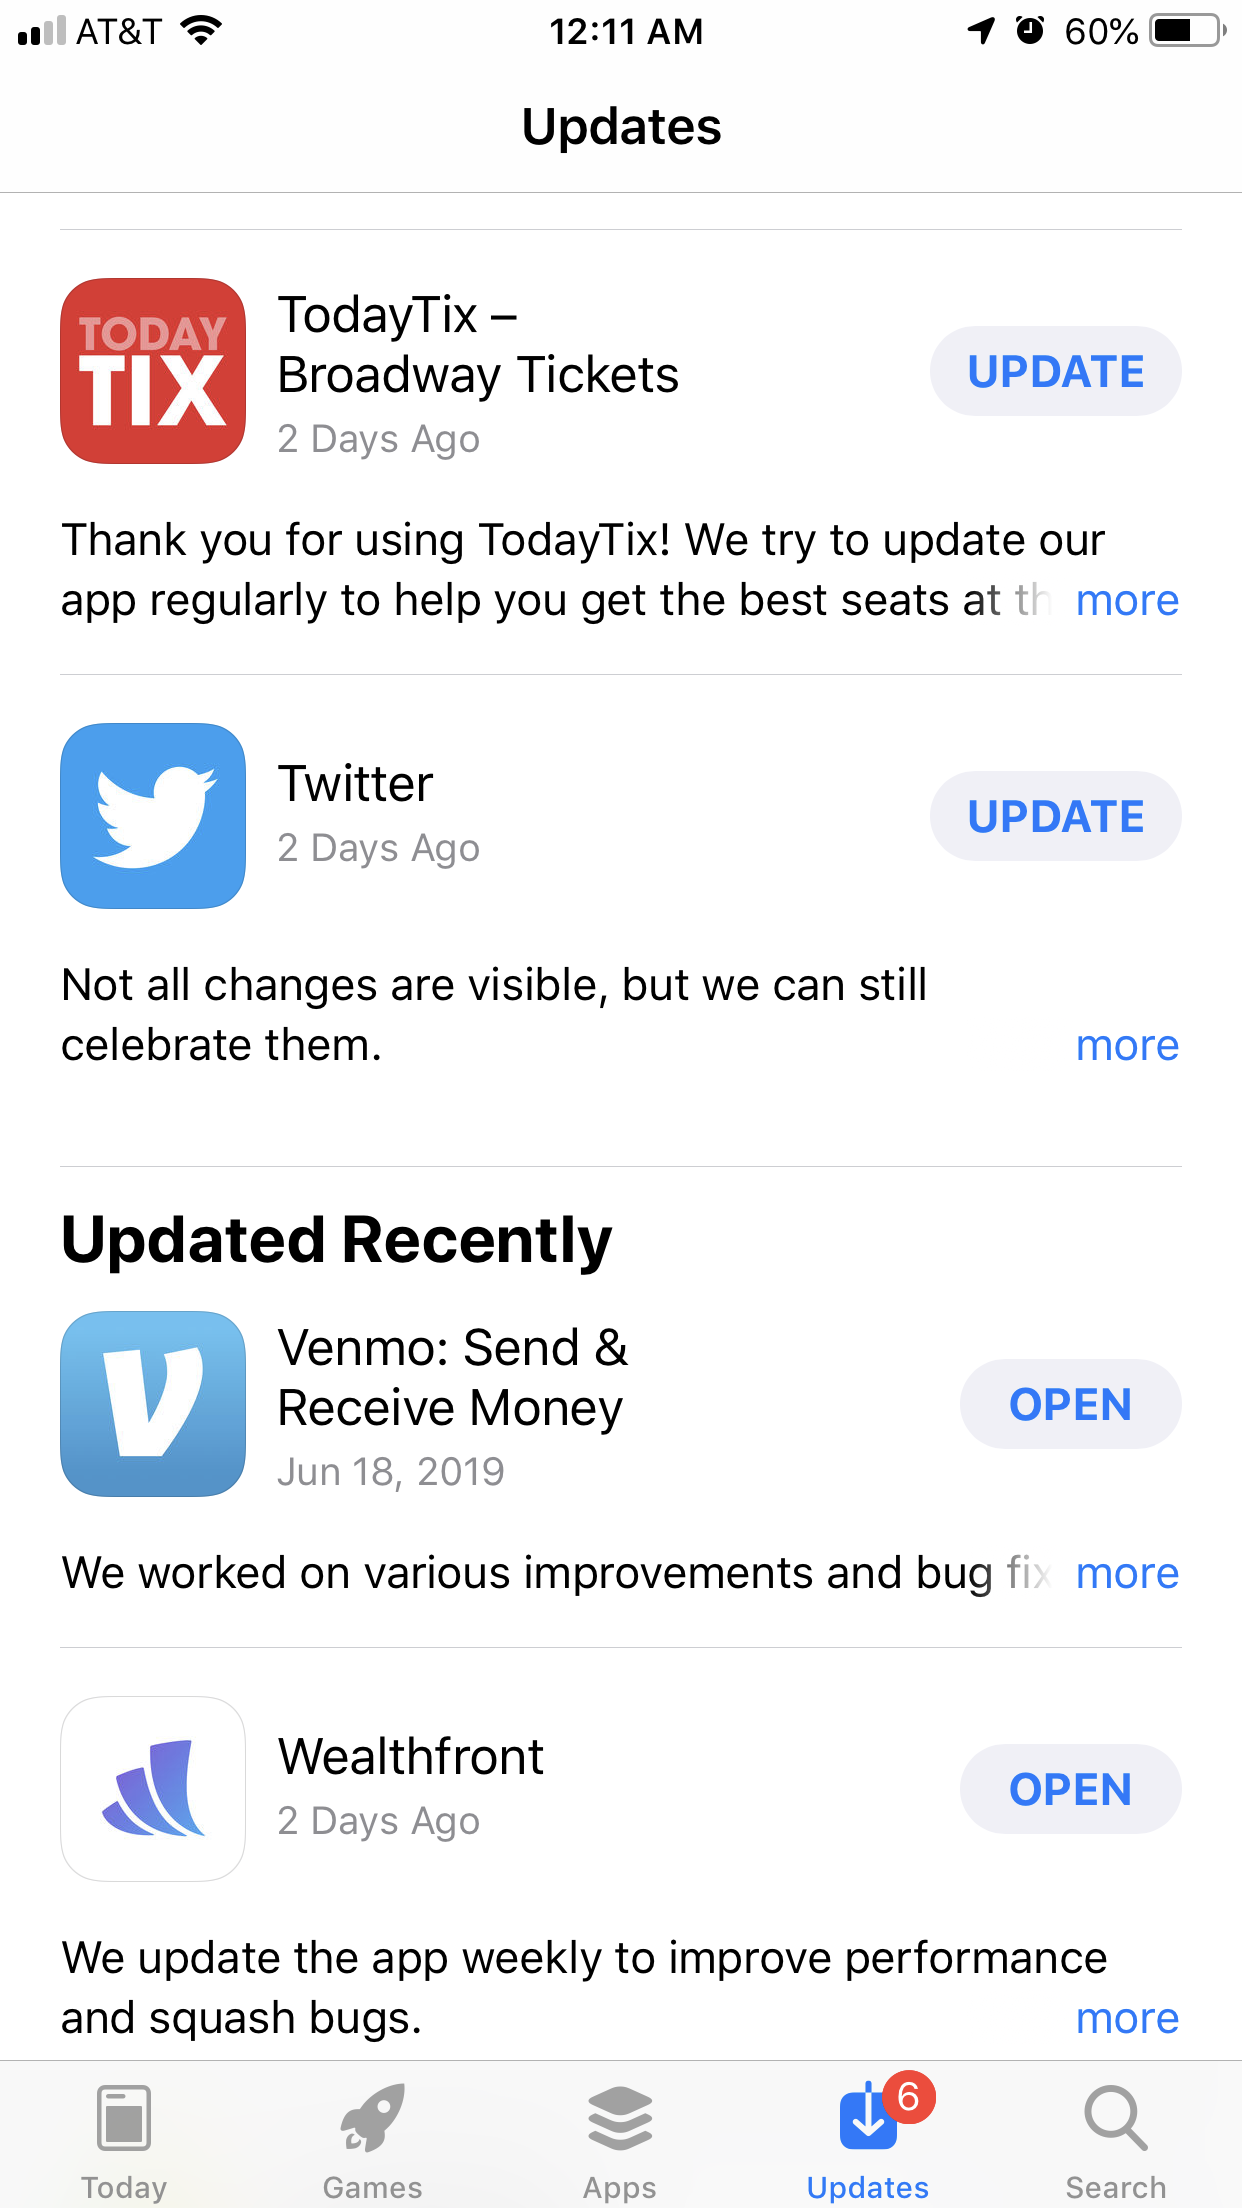 A screenshot of the update notes for various apps. Twitter: Not all changes are visible, but we can still celebrate them.